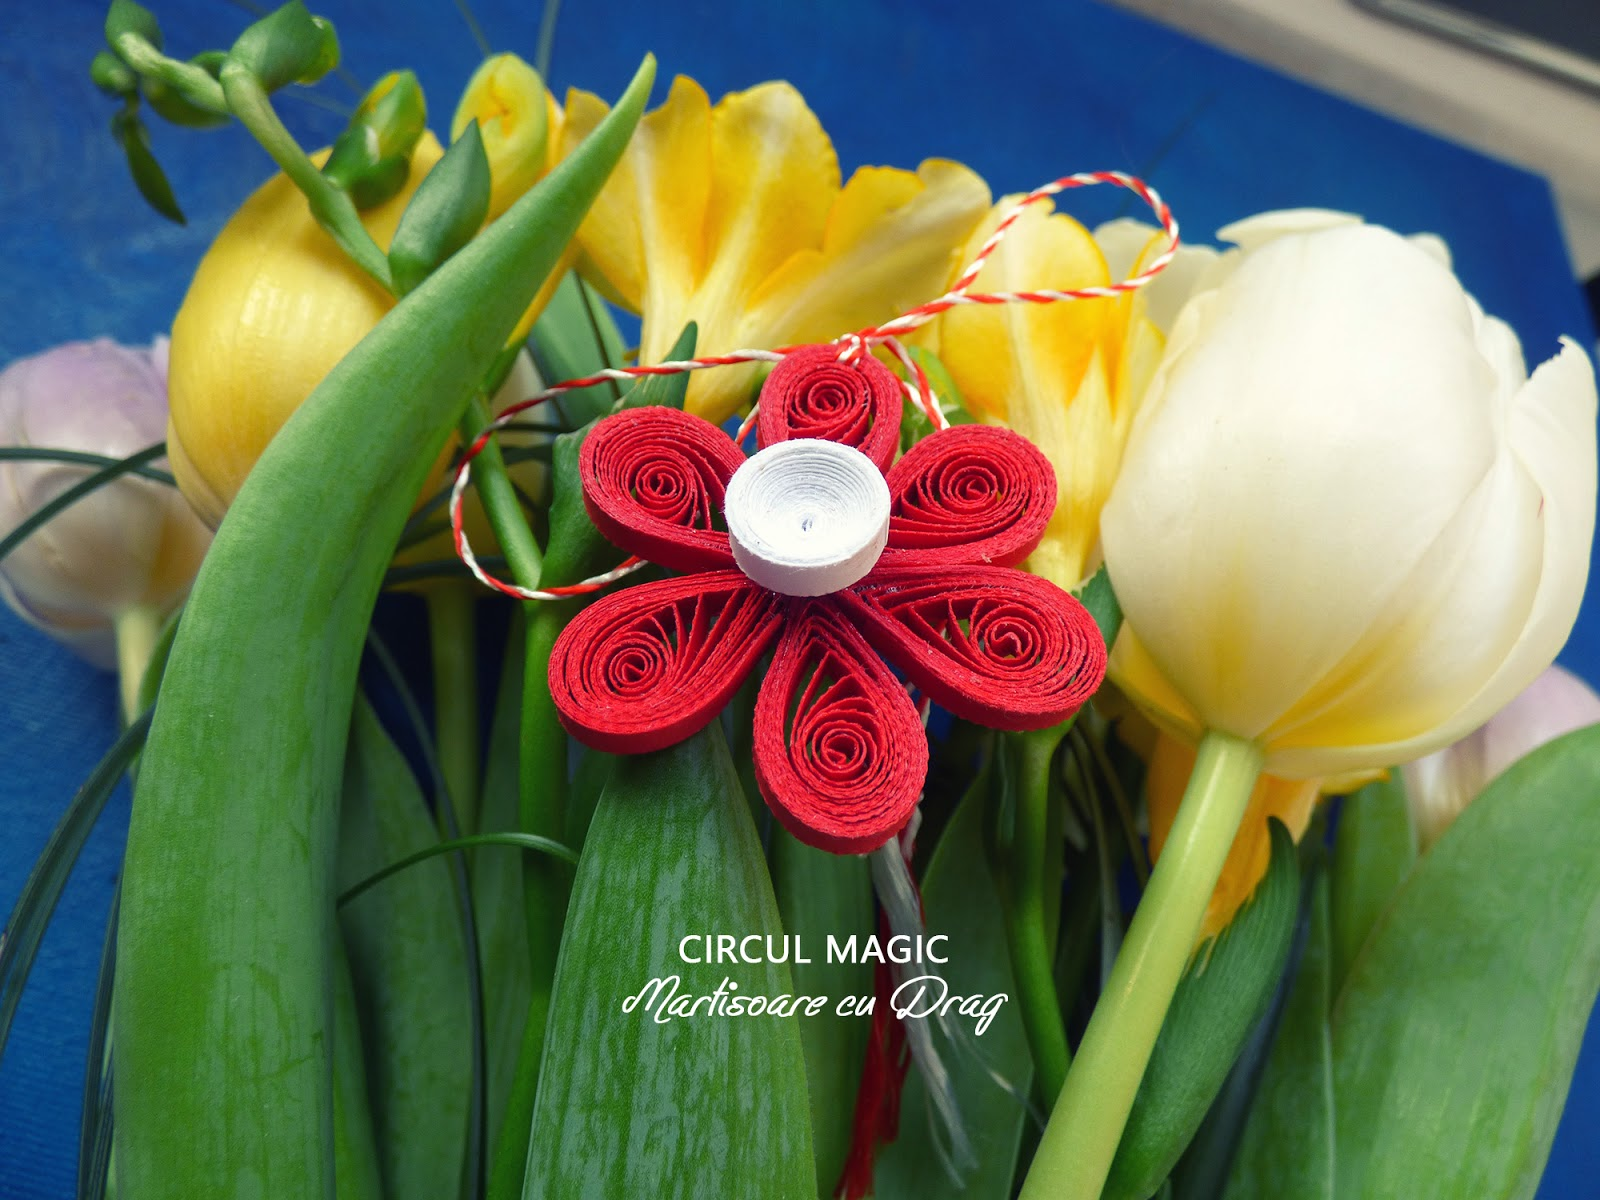 Martisoare Quilling 2017 Flori Narcise Circul Magic